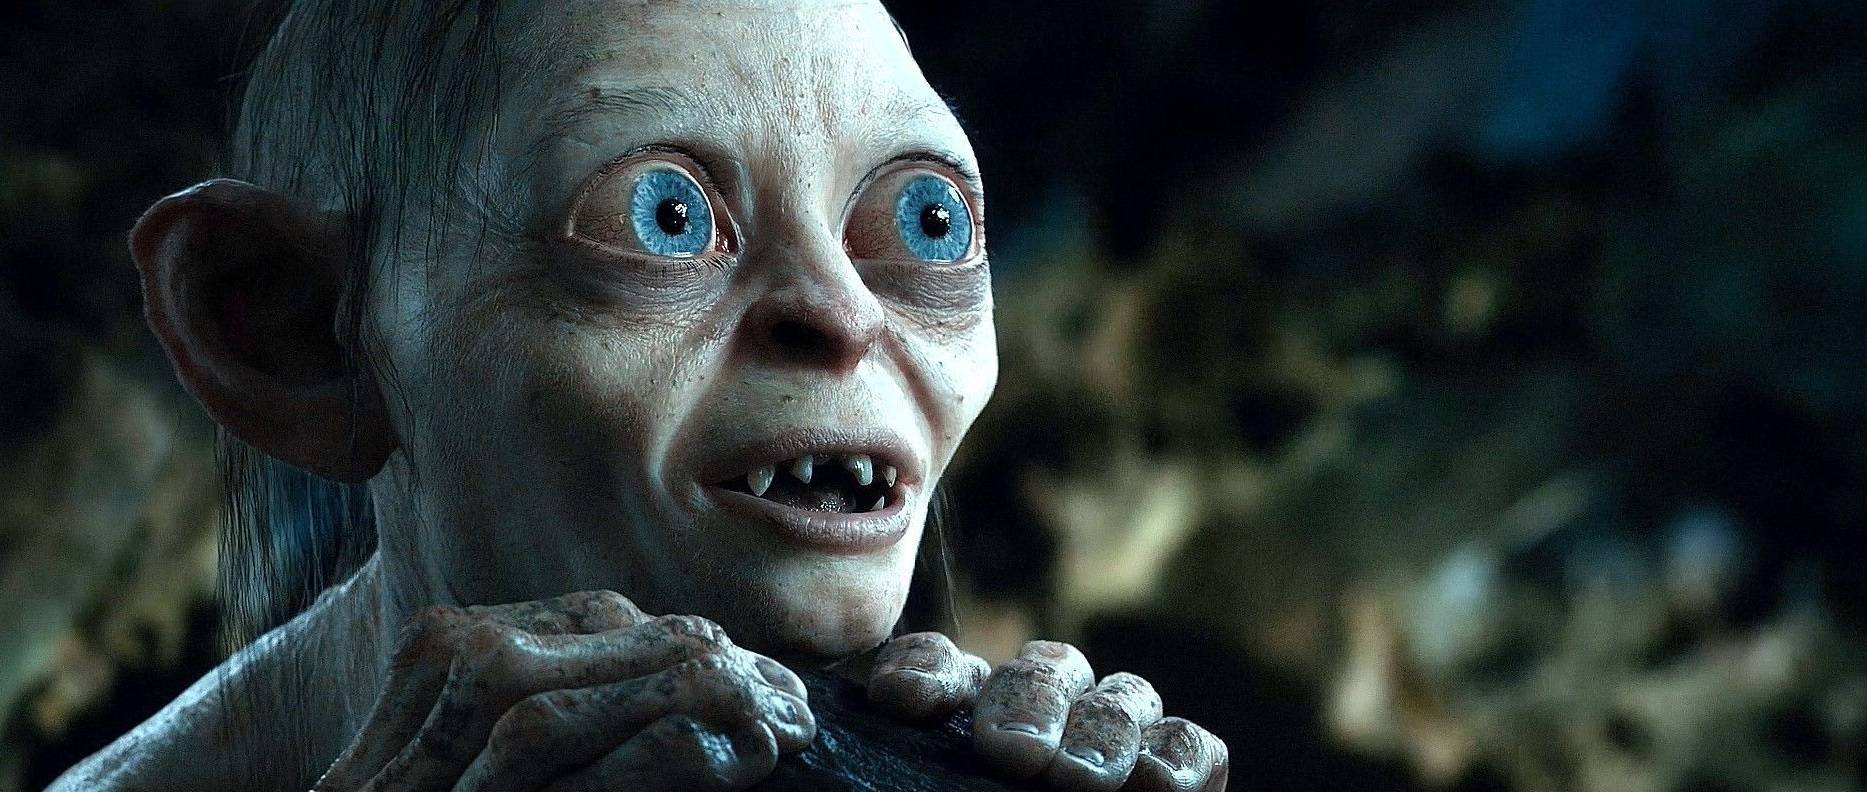 lord-of-the-rings-gollum-wallpaper-high-resolution-jpg.5146